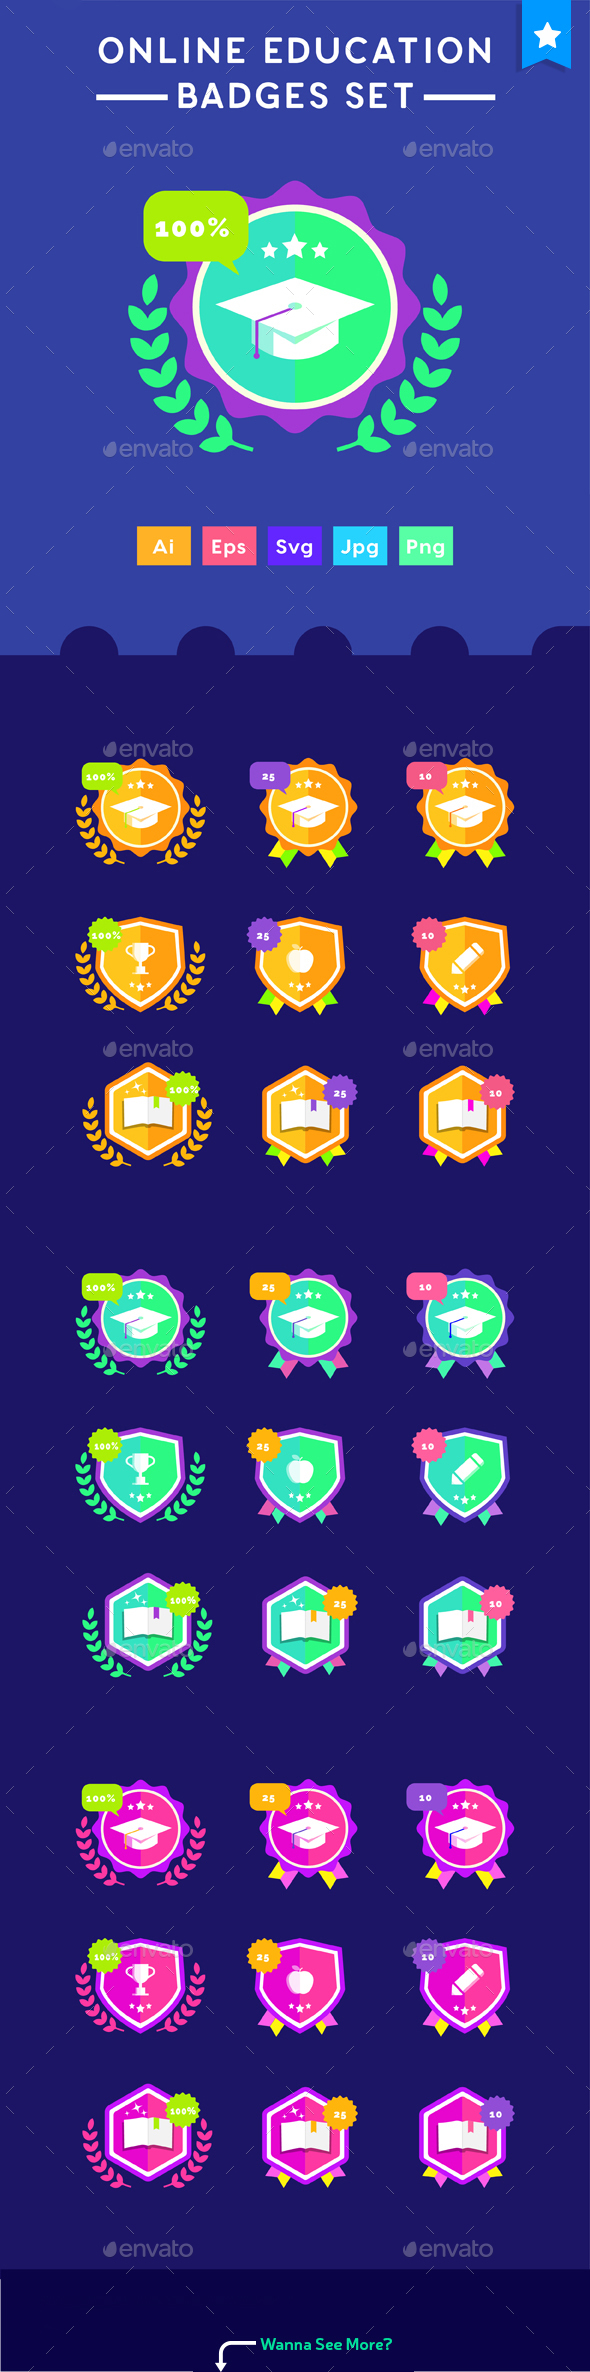 Badges Set - Online Education Achievement Level Badges for e-learning website - Vectors